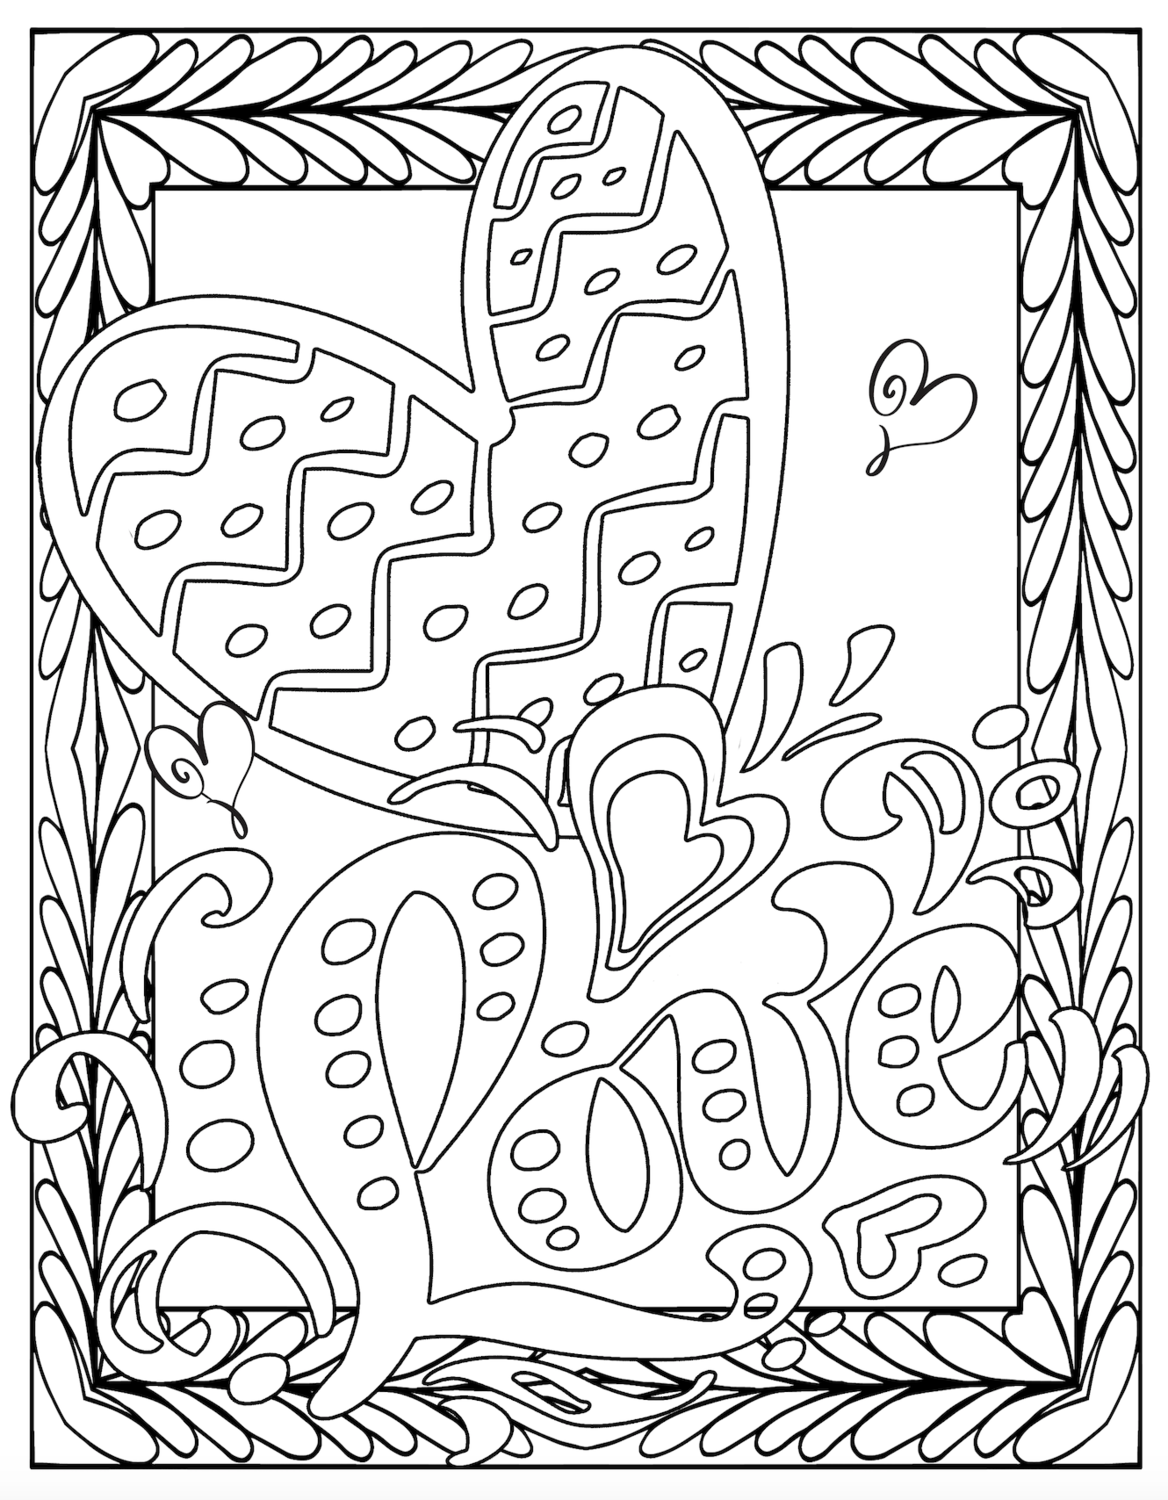 love coloring pages printable quoti love you quot coloring pages printable love coloring pages